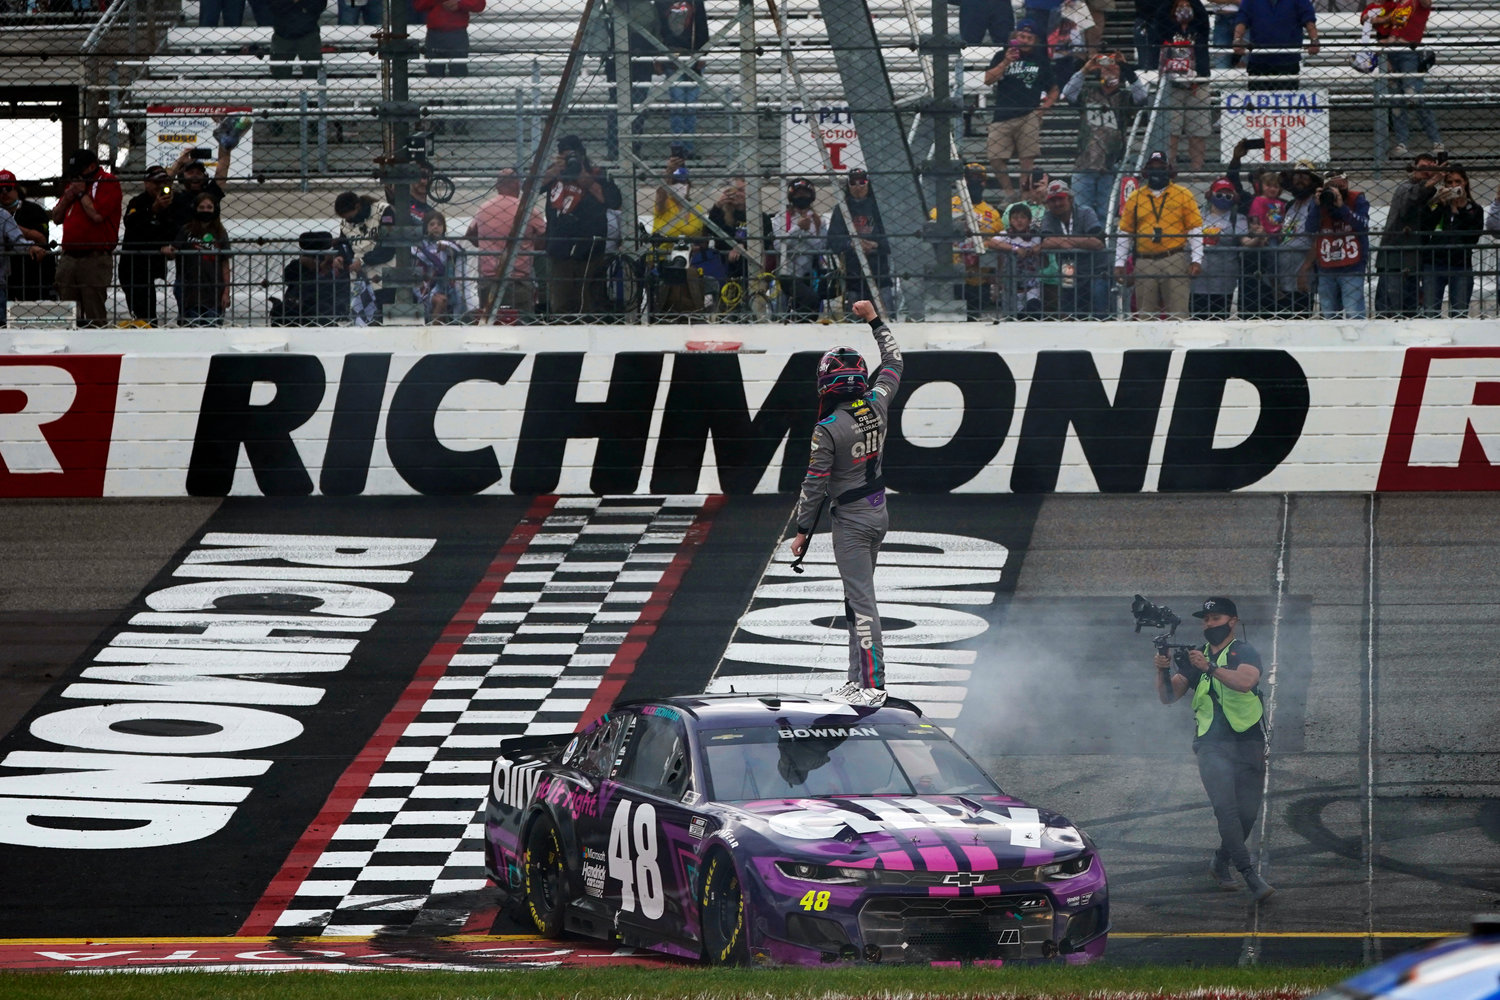 Alex Bowman (48) stands on his car as he celebrates winning the NASCAR Cup Series auto race at Richmond International Raceway in Richmond, Va., Sunday, April 18, 2021.  (AP Photo/Steve Helber)